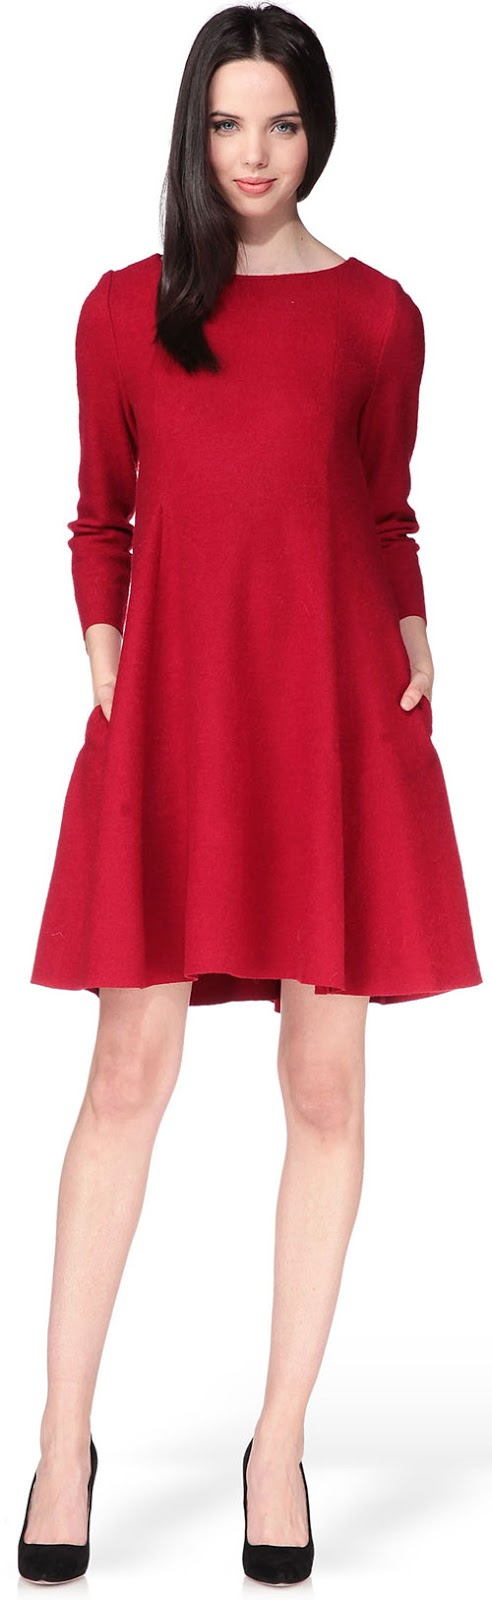 Robe courte rouge en laine Cacharel